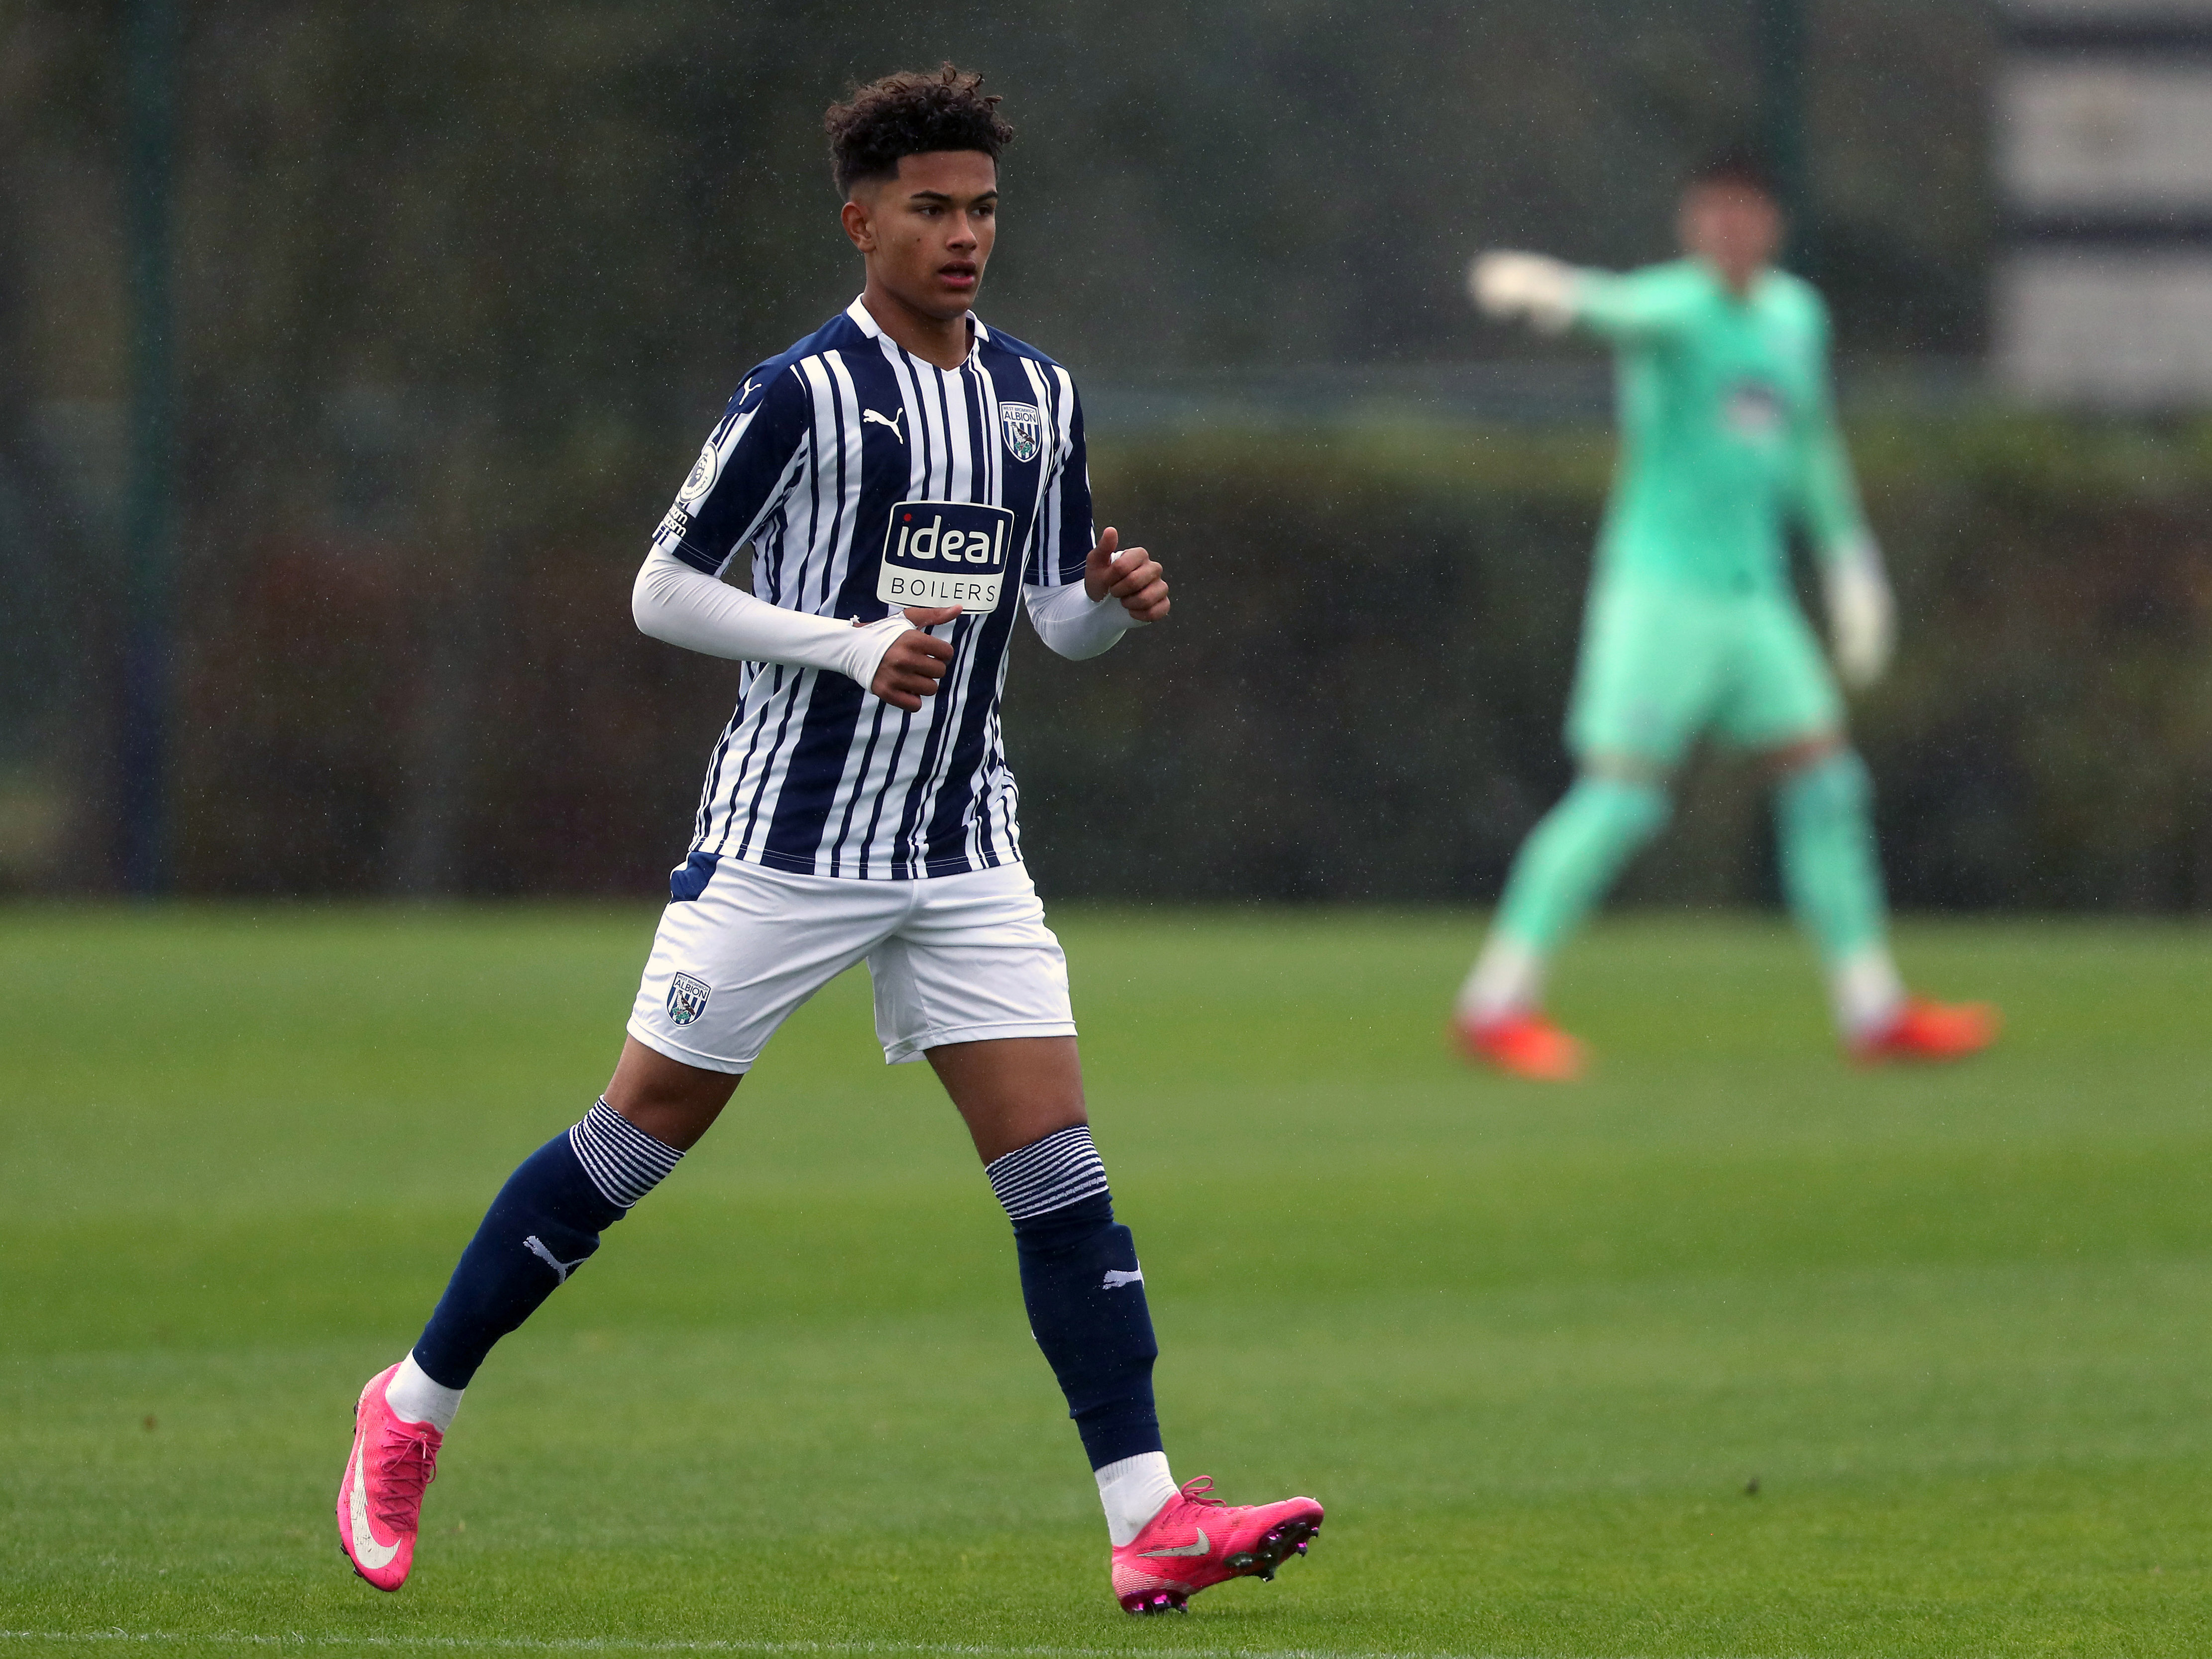 Albion's PL2 game with Burnley has been postponed